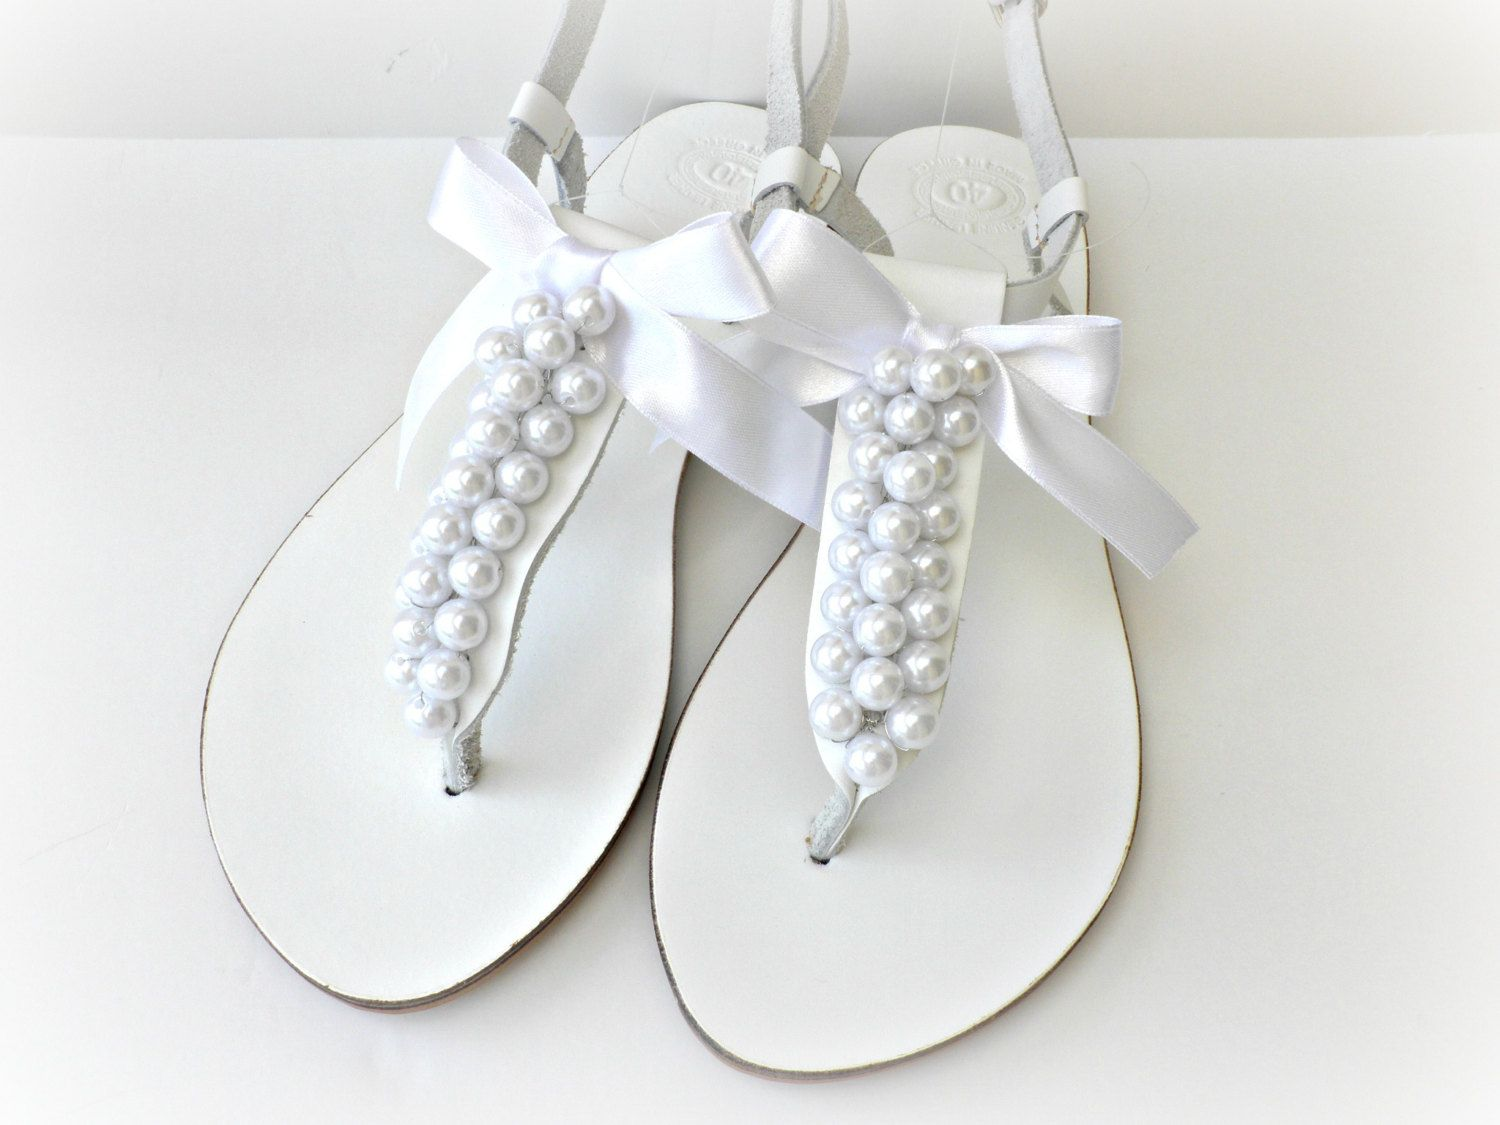 Charming Wedding Leather Sandals, White Sandals Decorated With White Pearls, Pearls  Sandals, Bridal Shoes